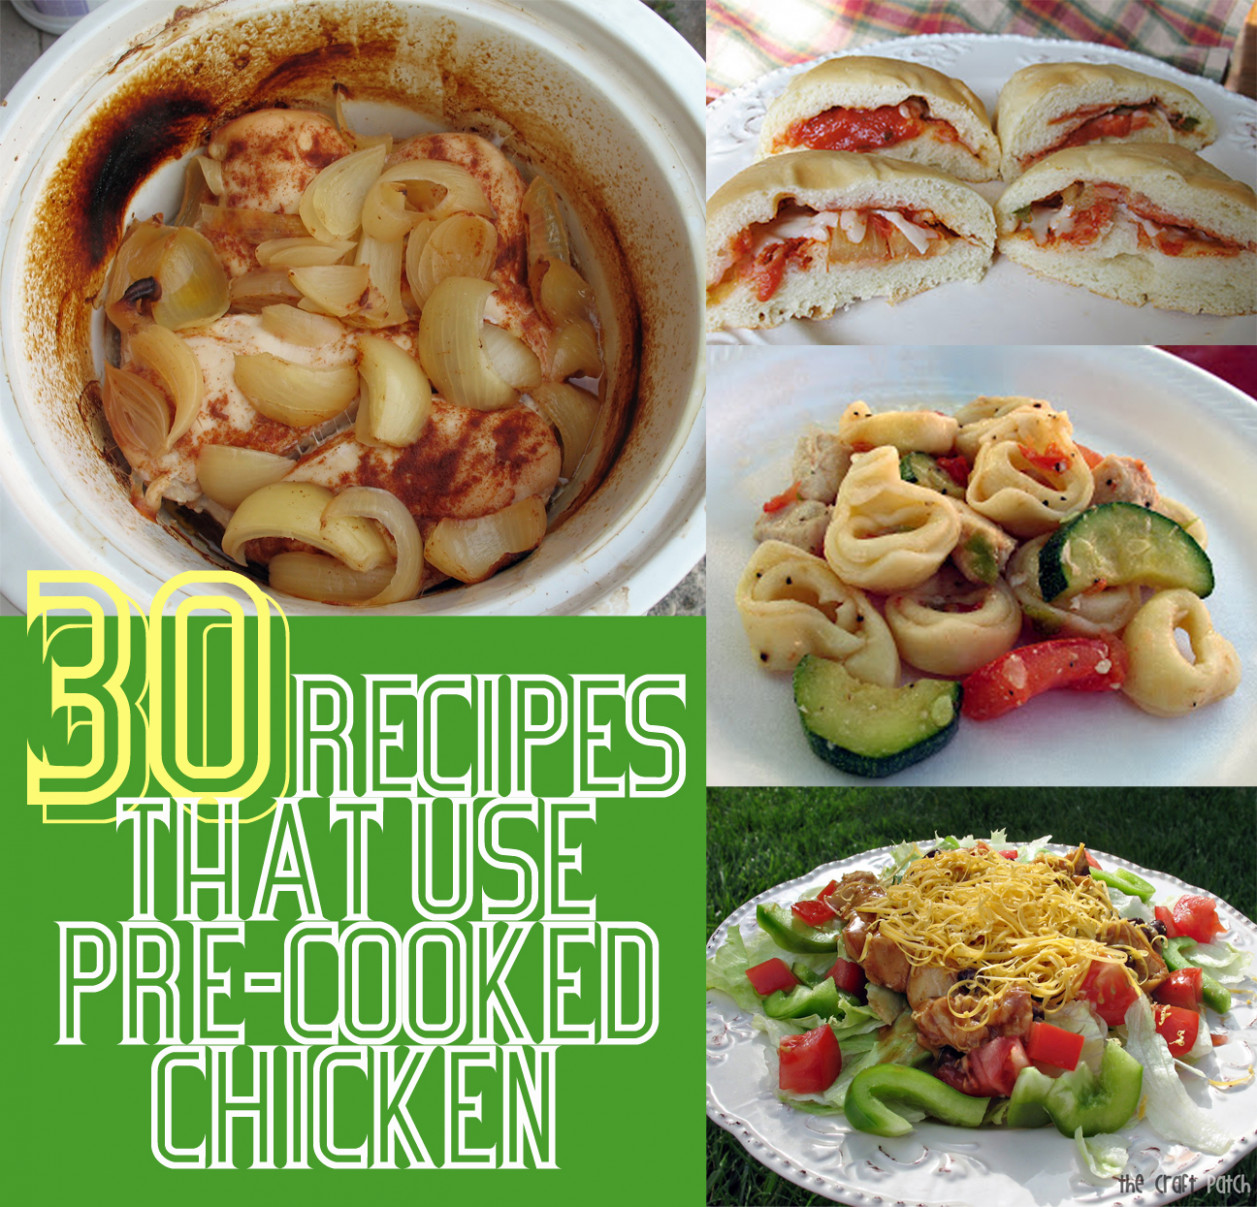 15 Leftover Chicken Recipes - The Craft Patch - chicken recipes leftover